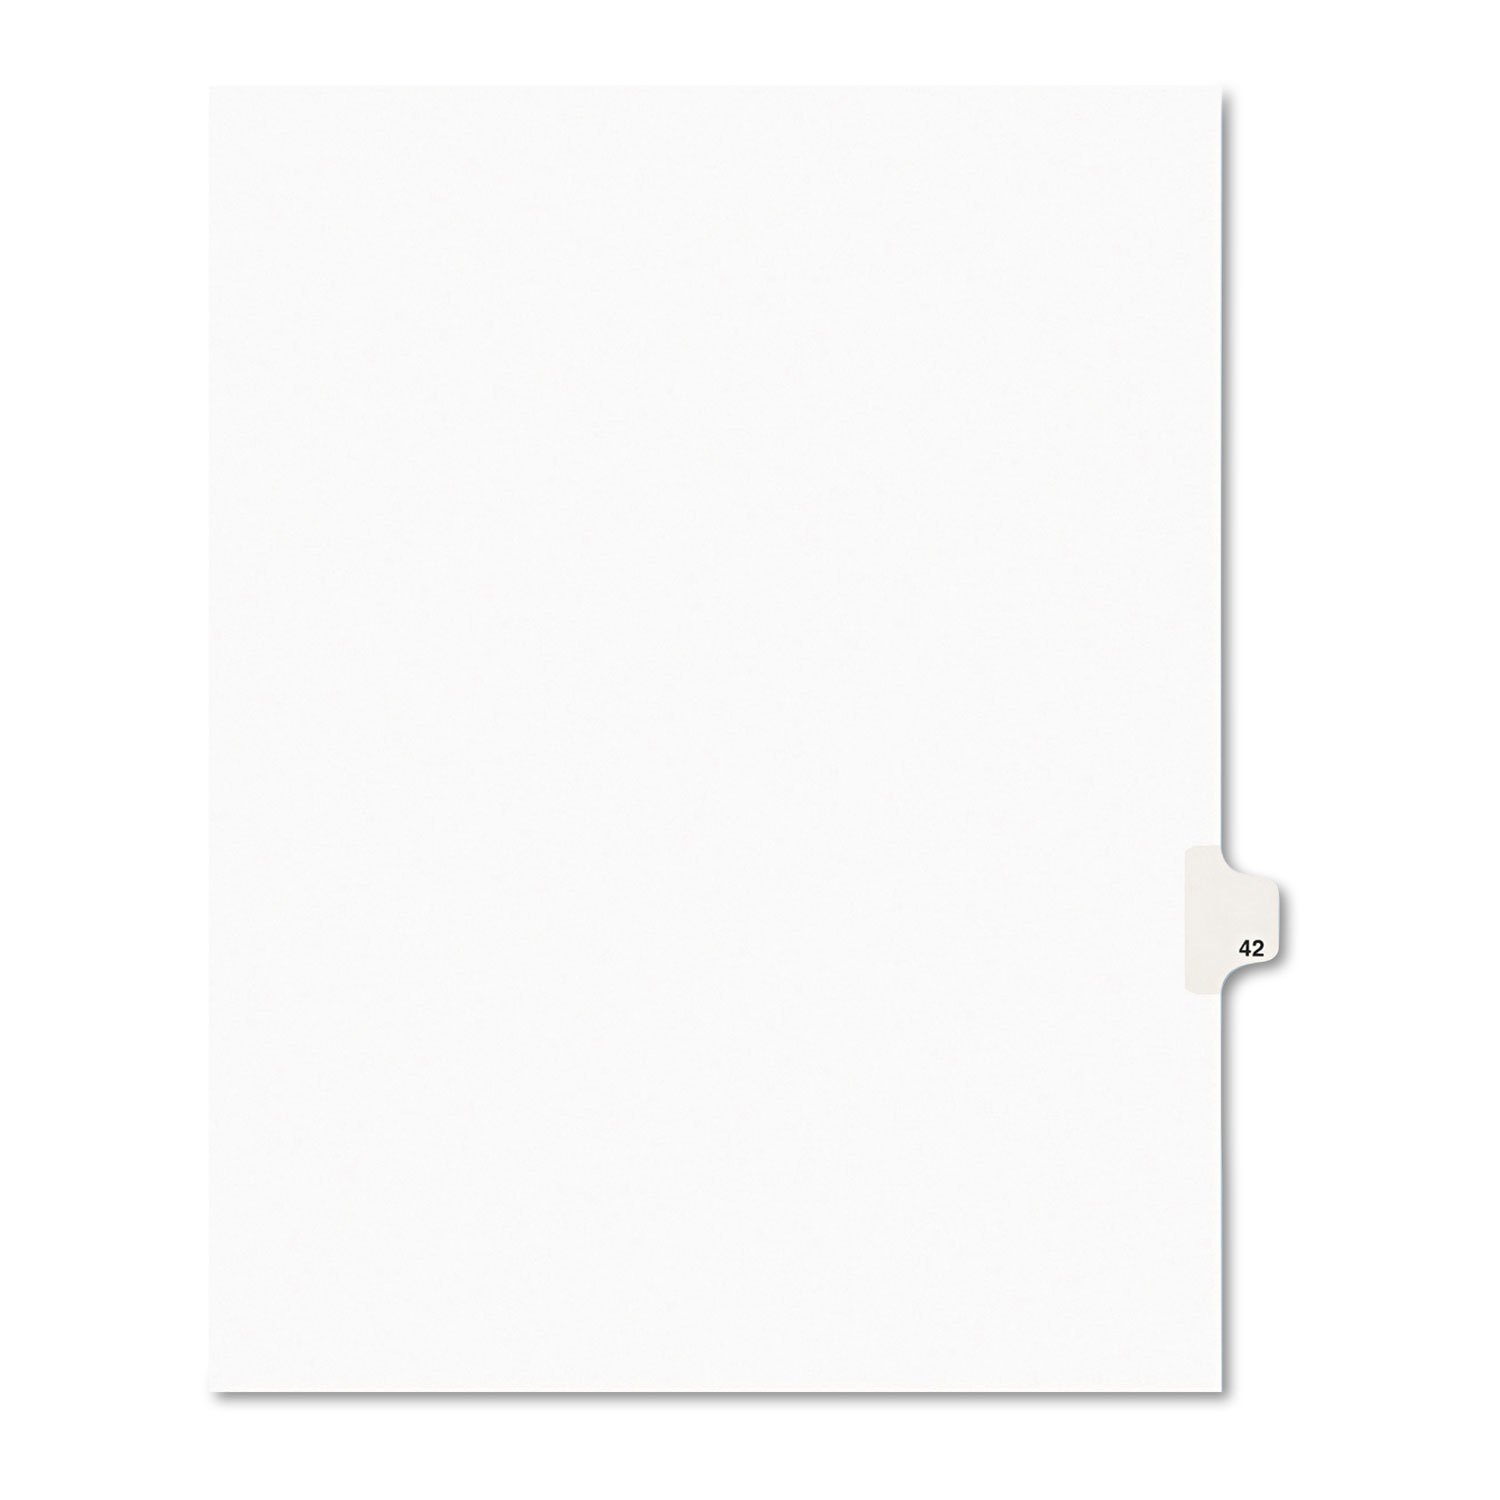 Avery 01042 Legal Exhibit Side Tab Divider, Title: 42, Letter Size, White 25/PK by Avery (Image #1)